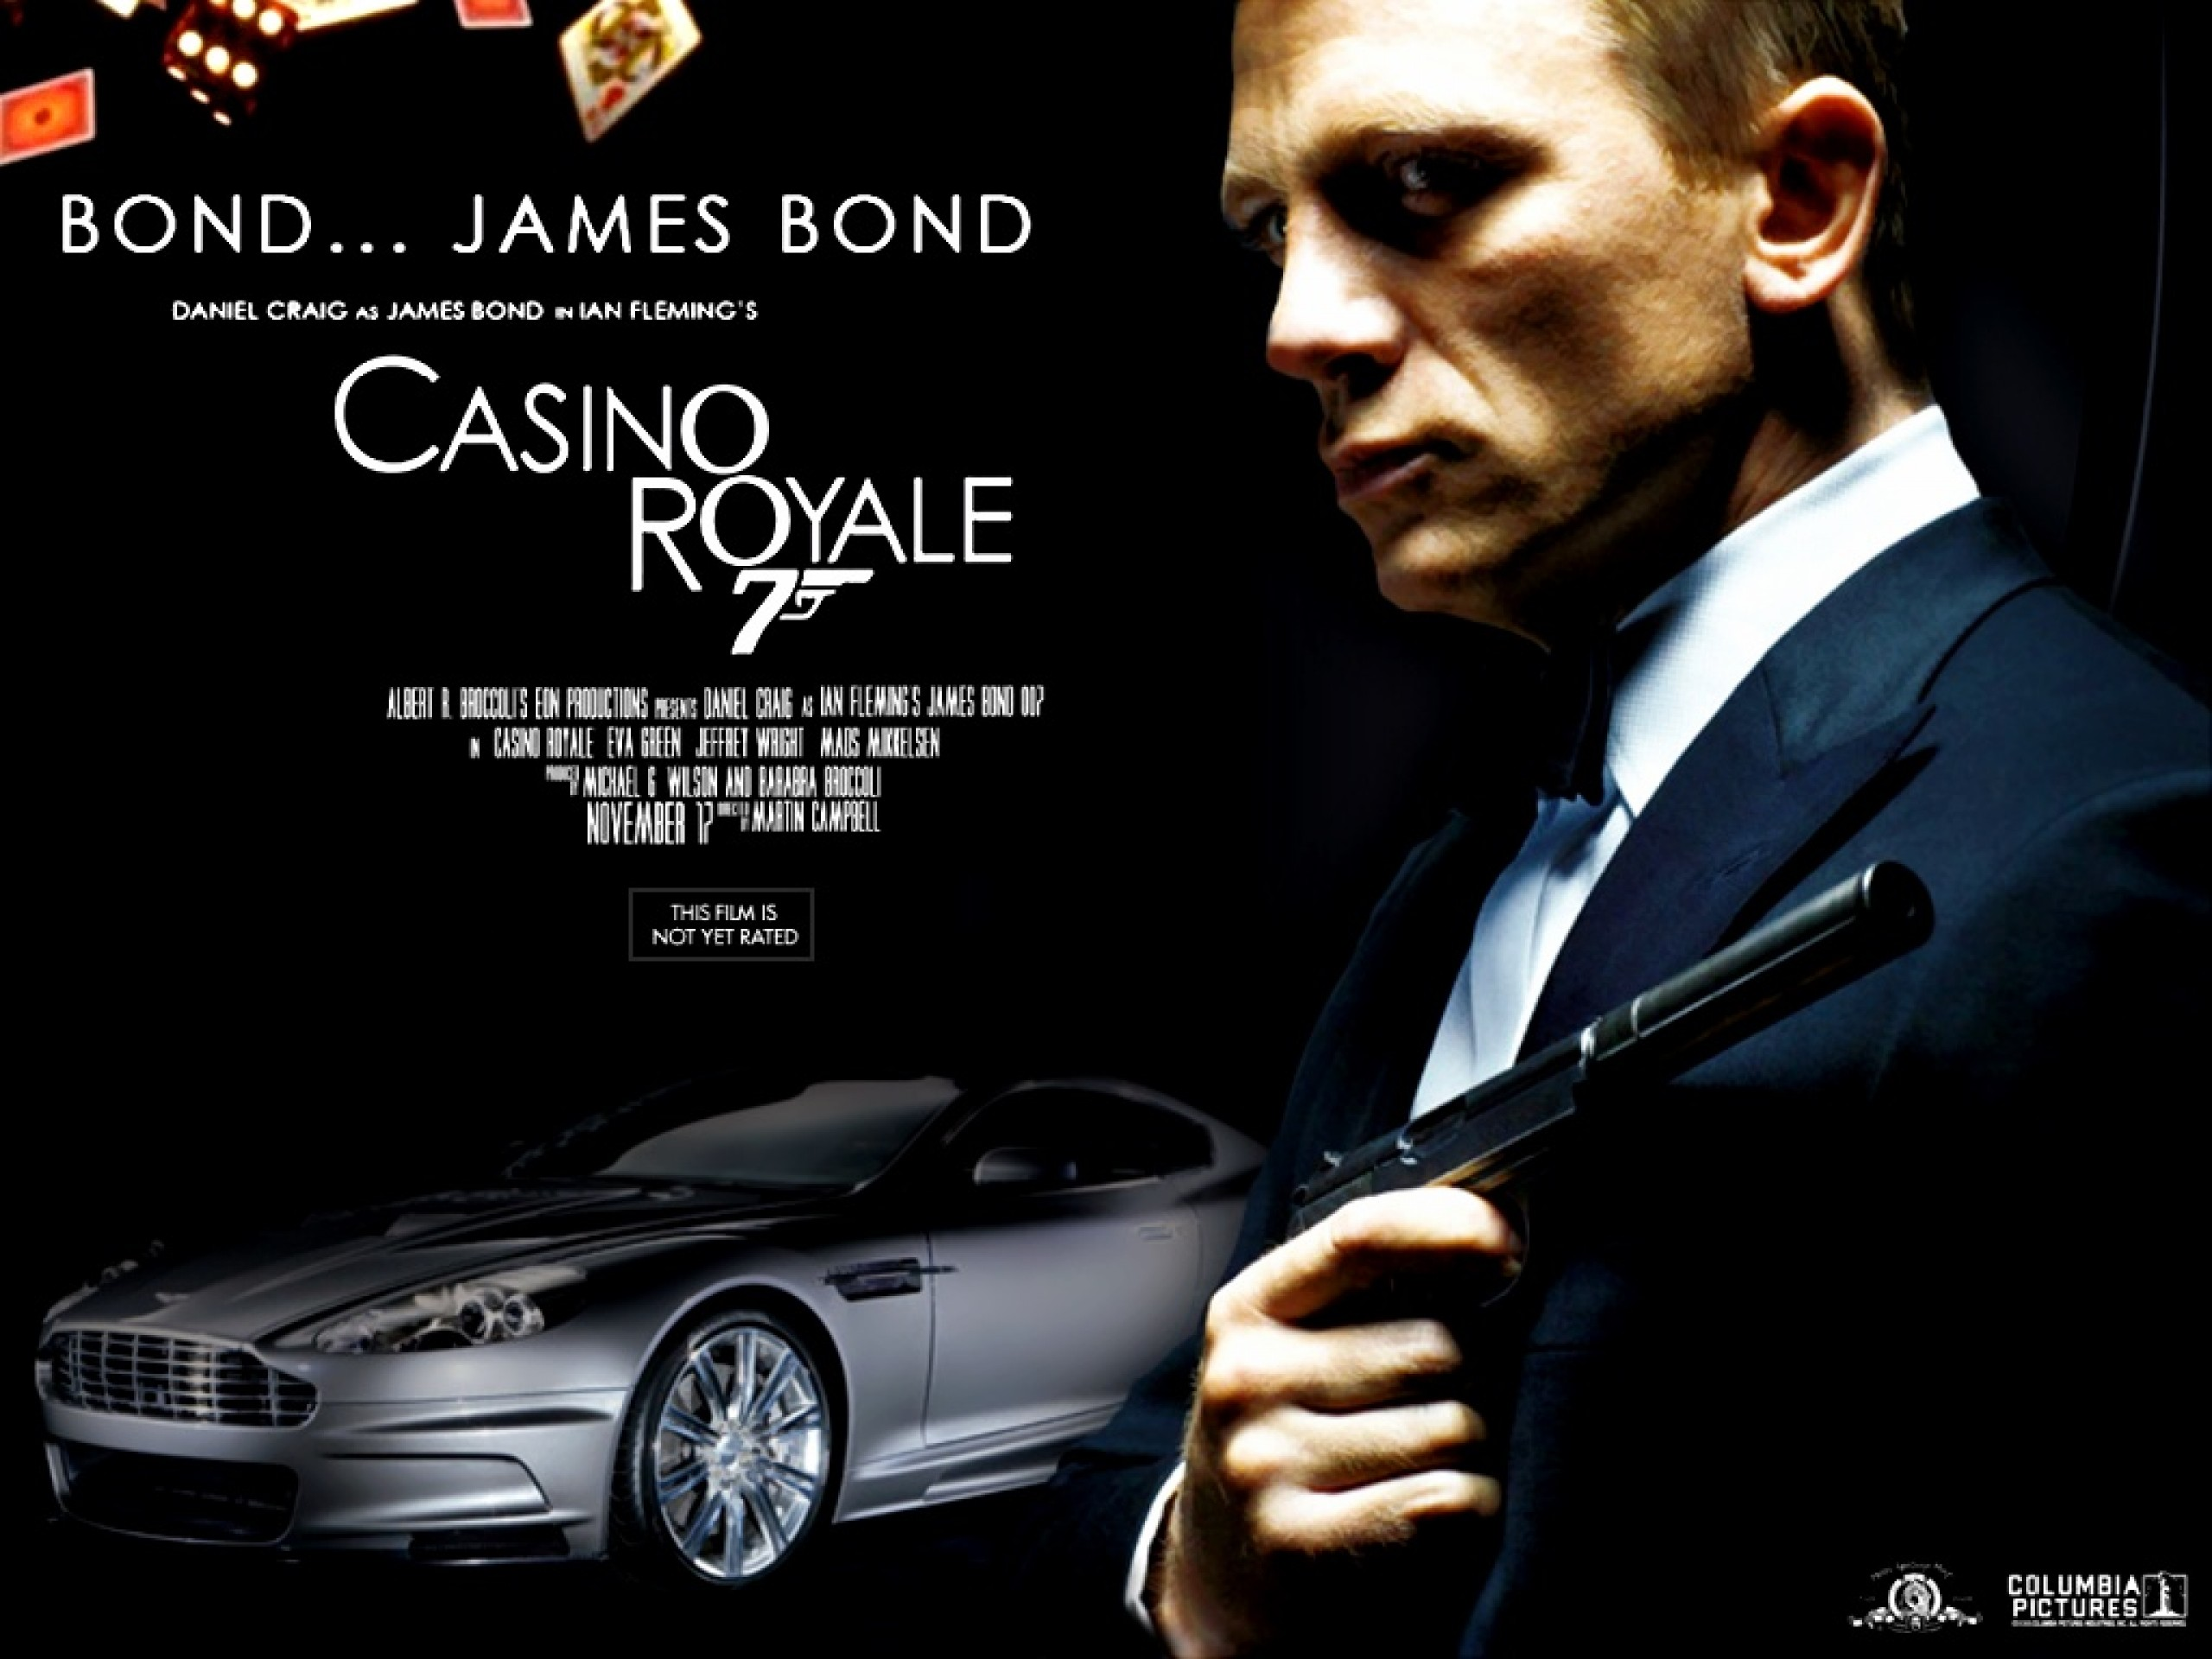 james bond casino royale full movie online free  games